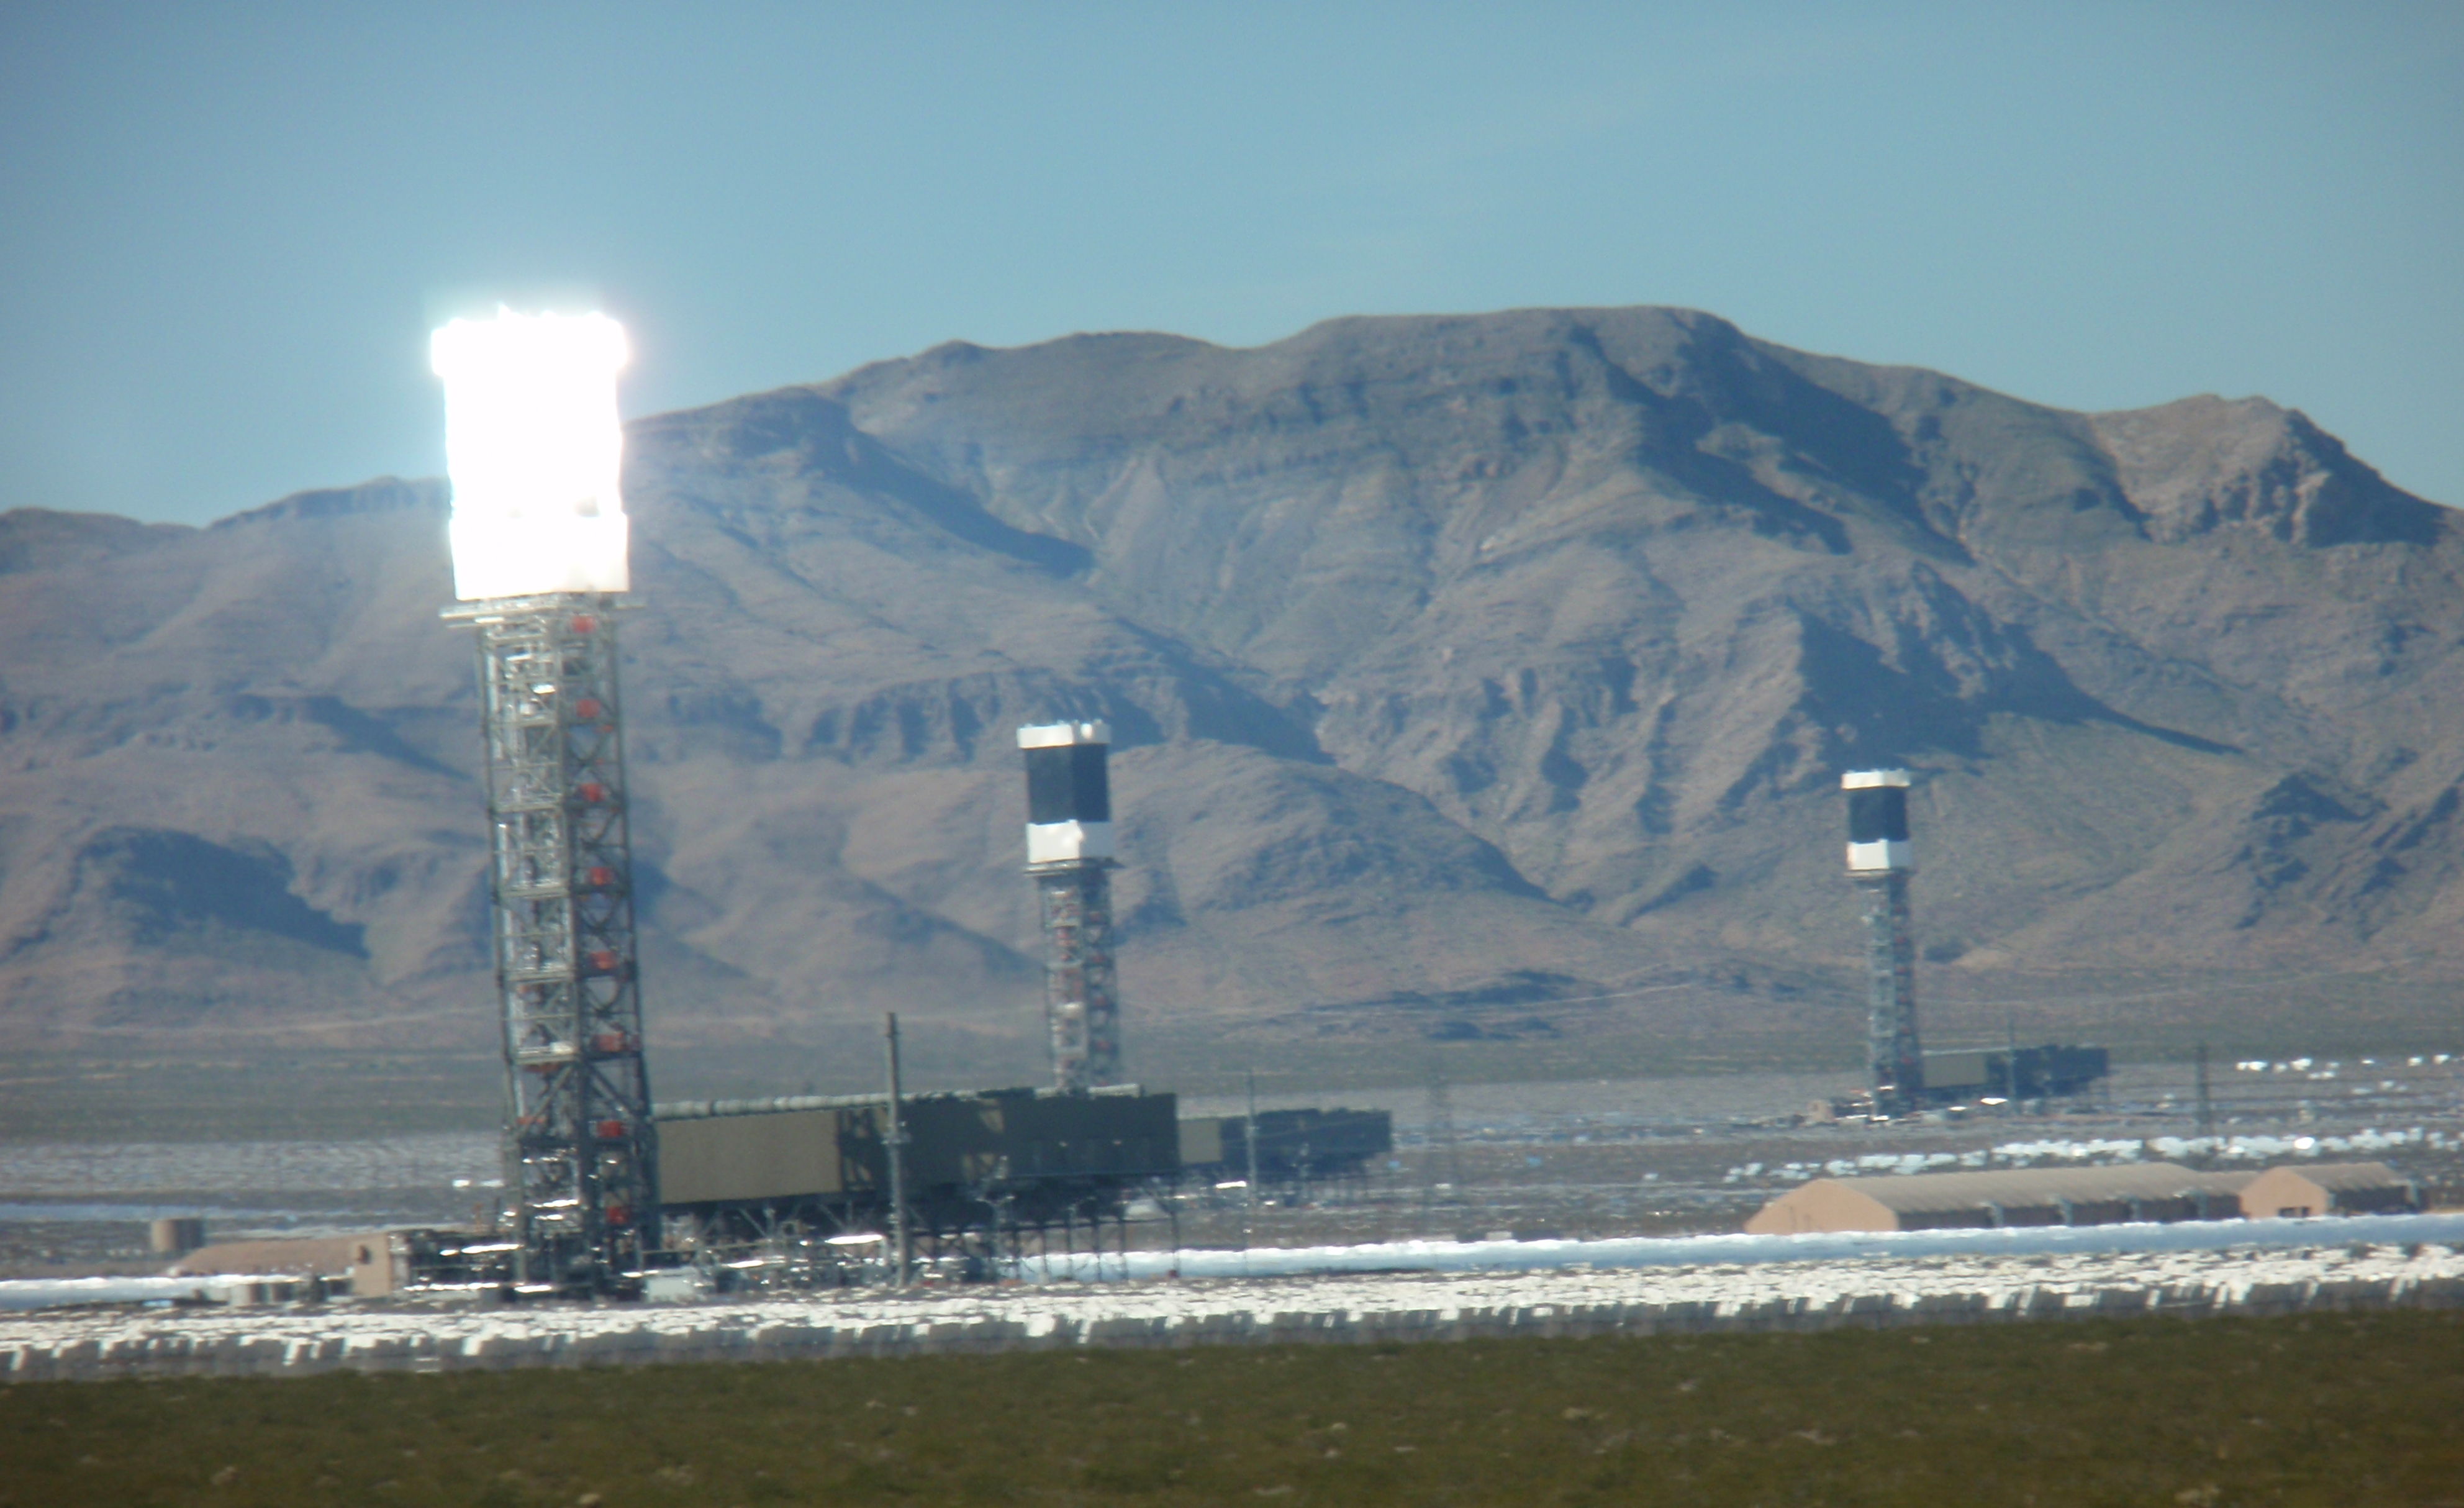 Only one of the three Ivanpah towers is burning the wings off birds at the moment this picture was taken in 2013. Photo by James Ulvog.